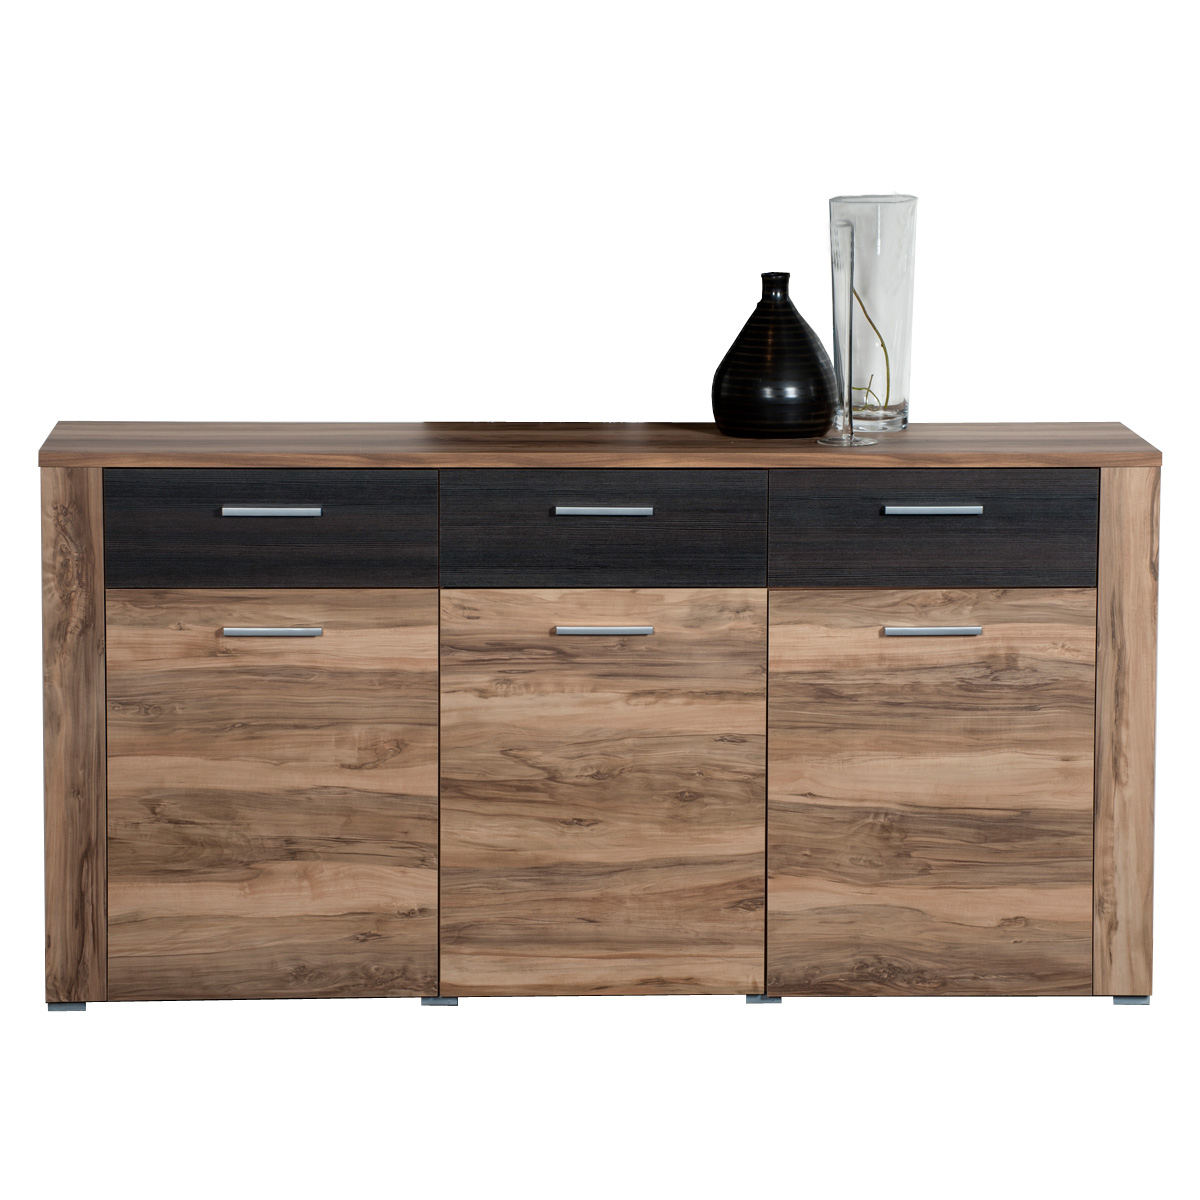 sideboard kandy kommode nussbaum touchwood neu ebay. Black Bedroom Furniture Sets. Home Design Ideas